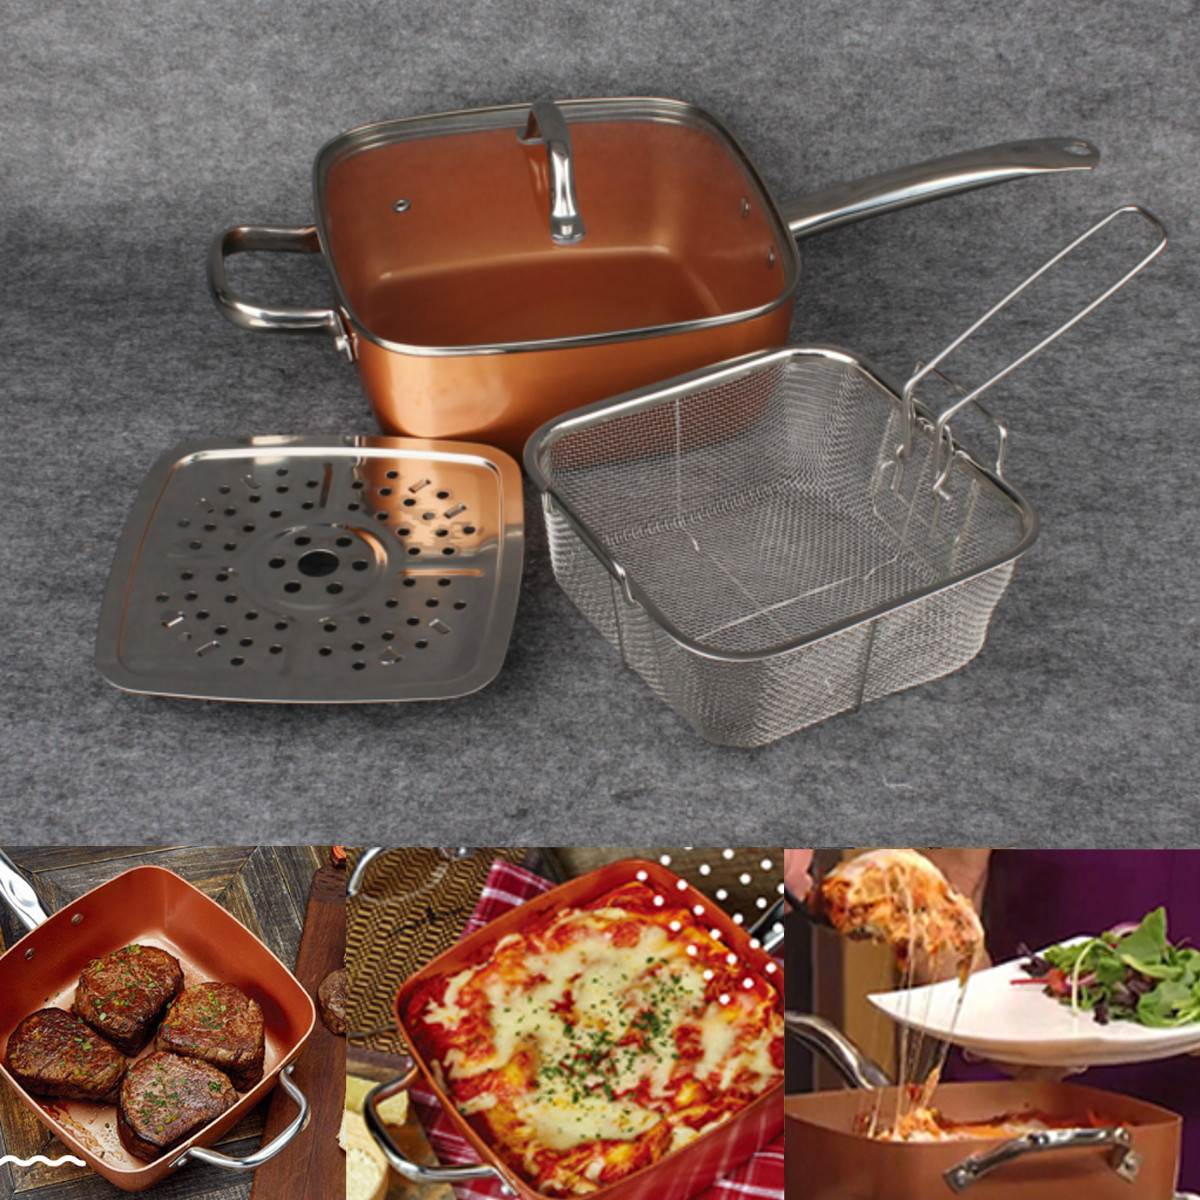 Nonstick Copper Pan Pots Cooker Induction Glass Lid Fry Filter Basket Steam Rack Chef Cooking Tool